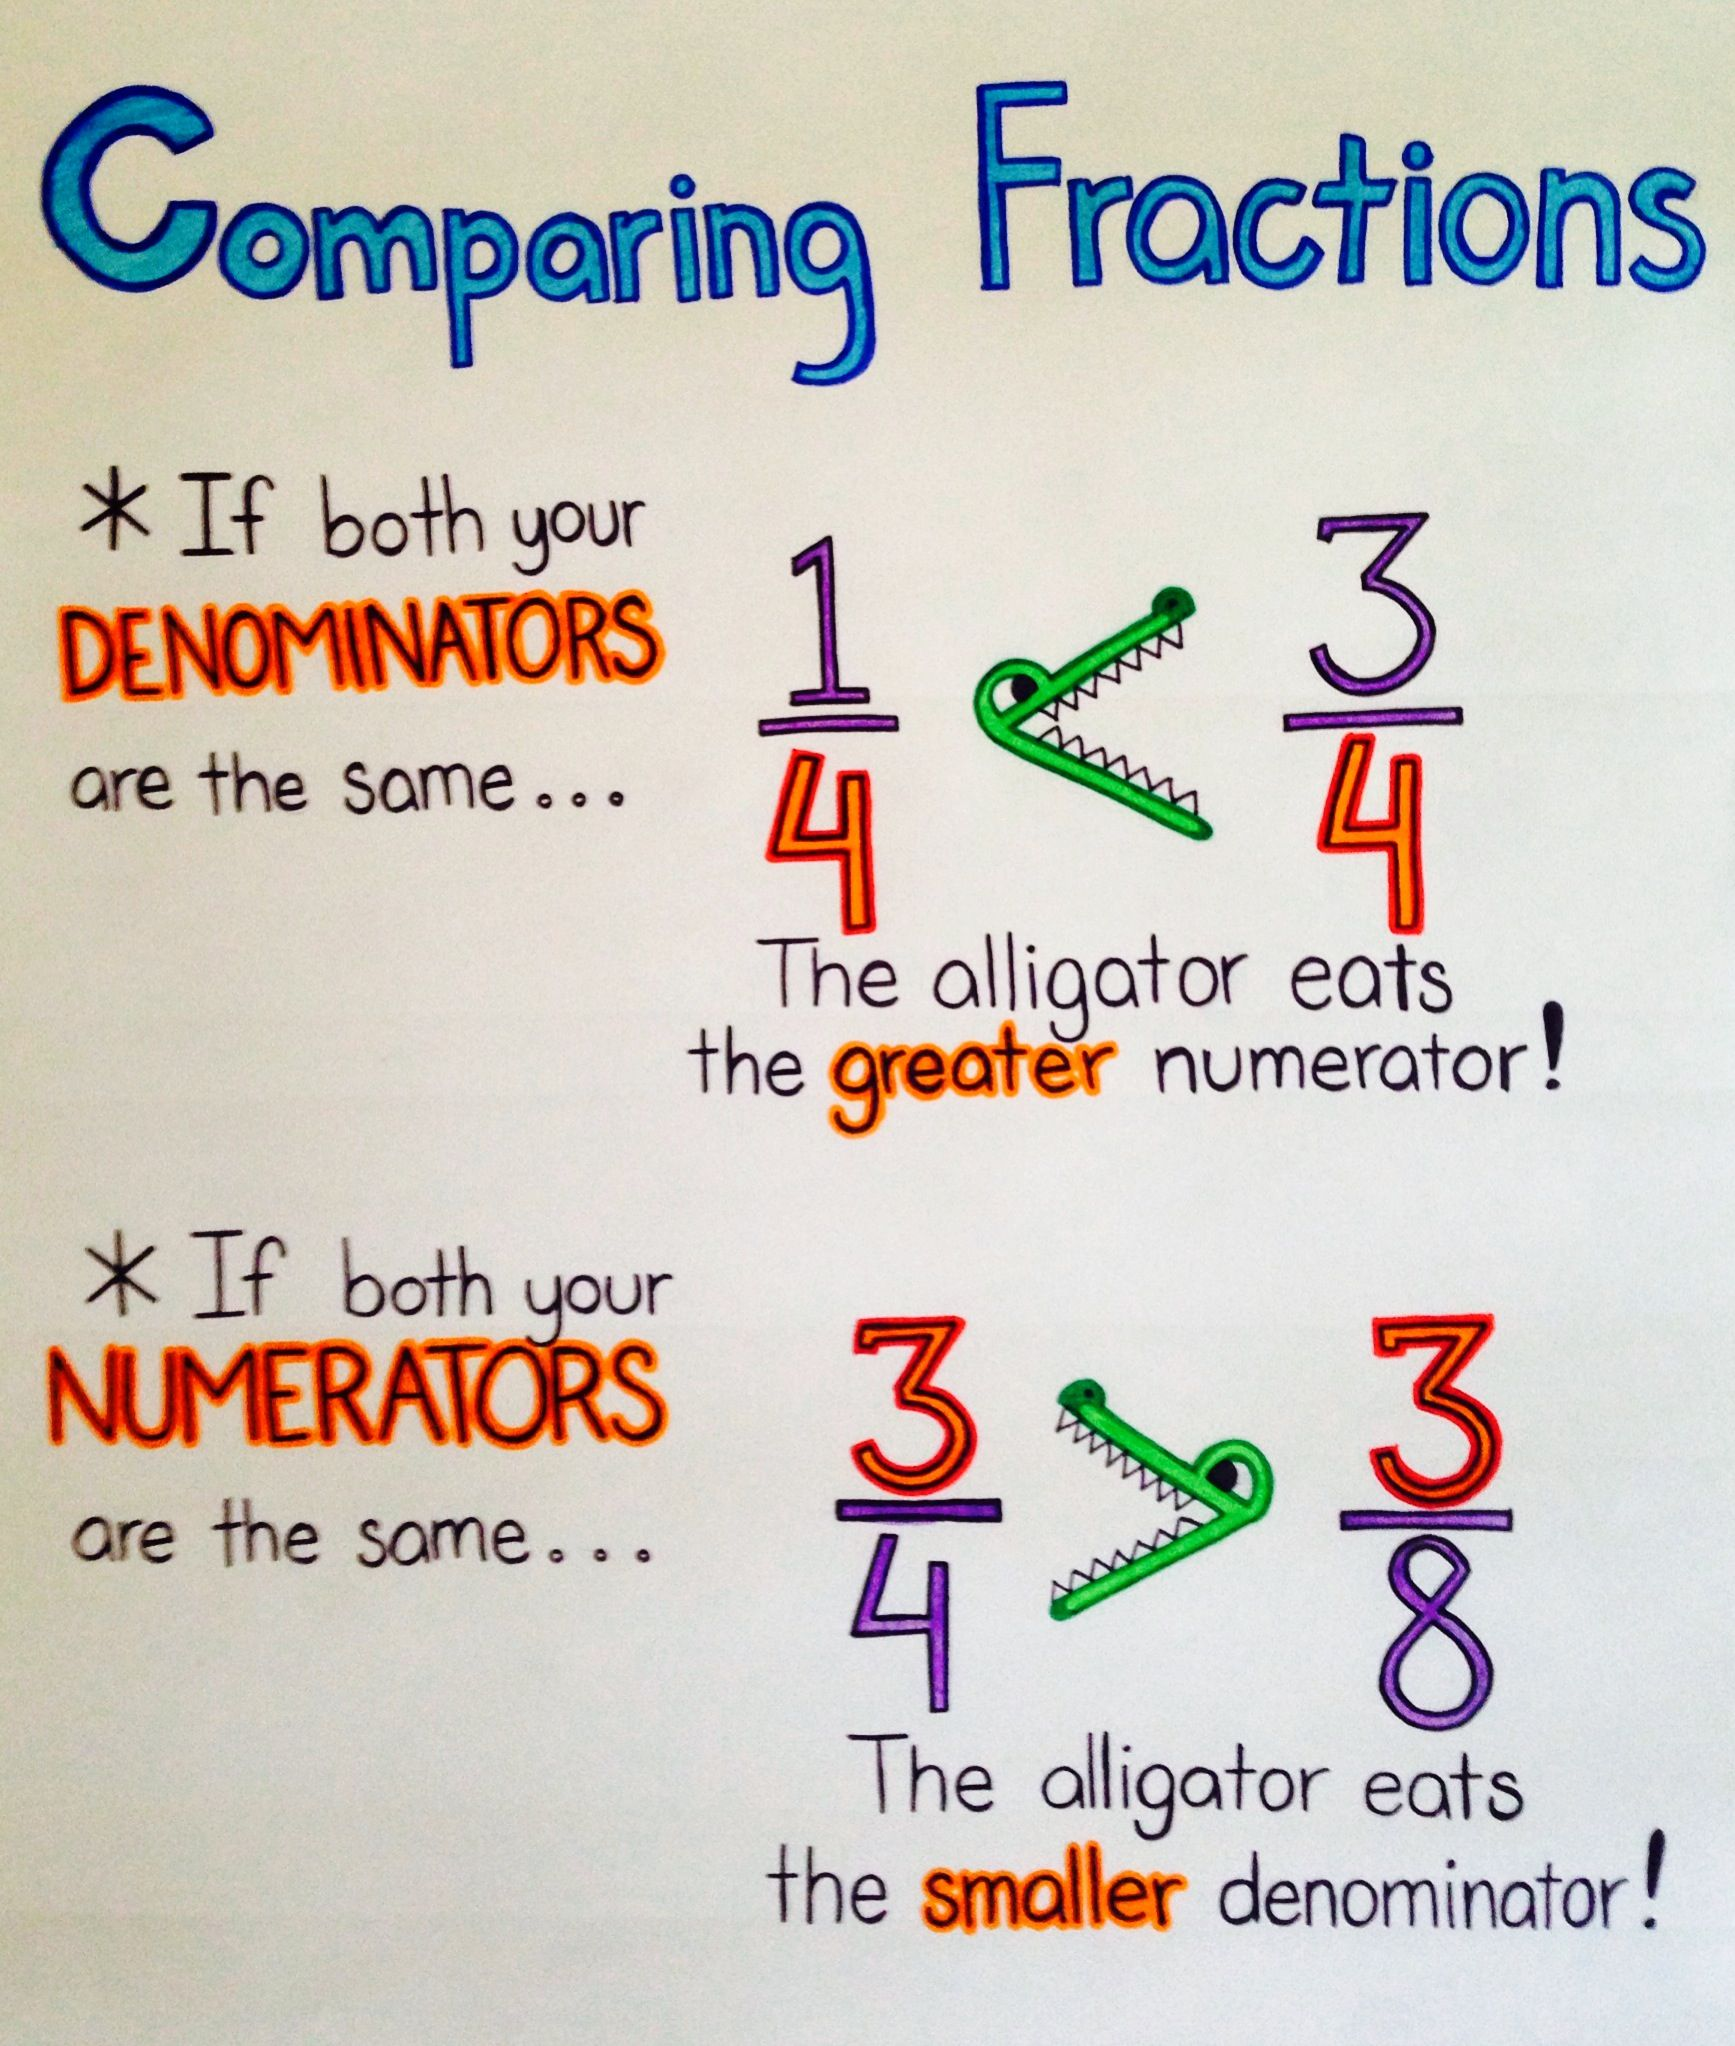 comparing fractions anchor chart | ec stuff | pinterest | math